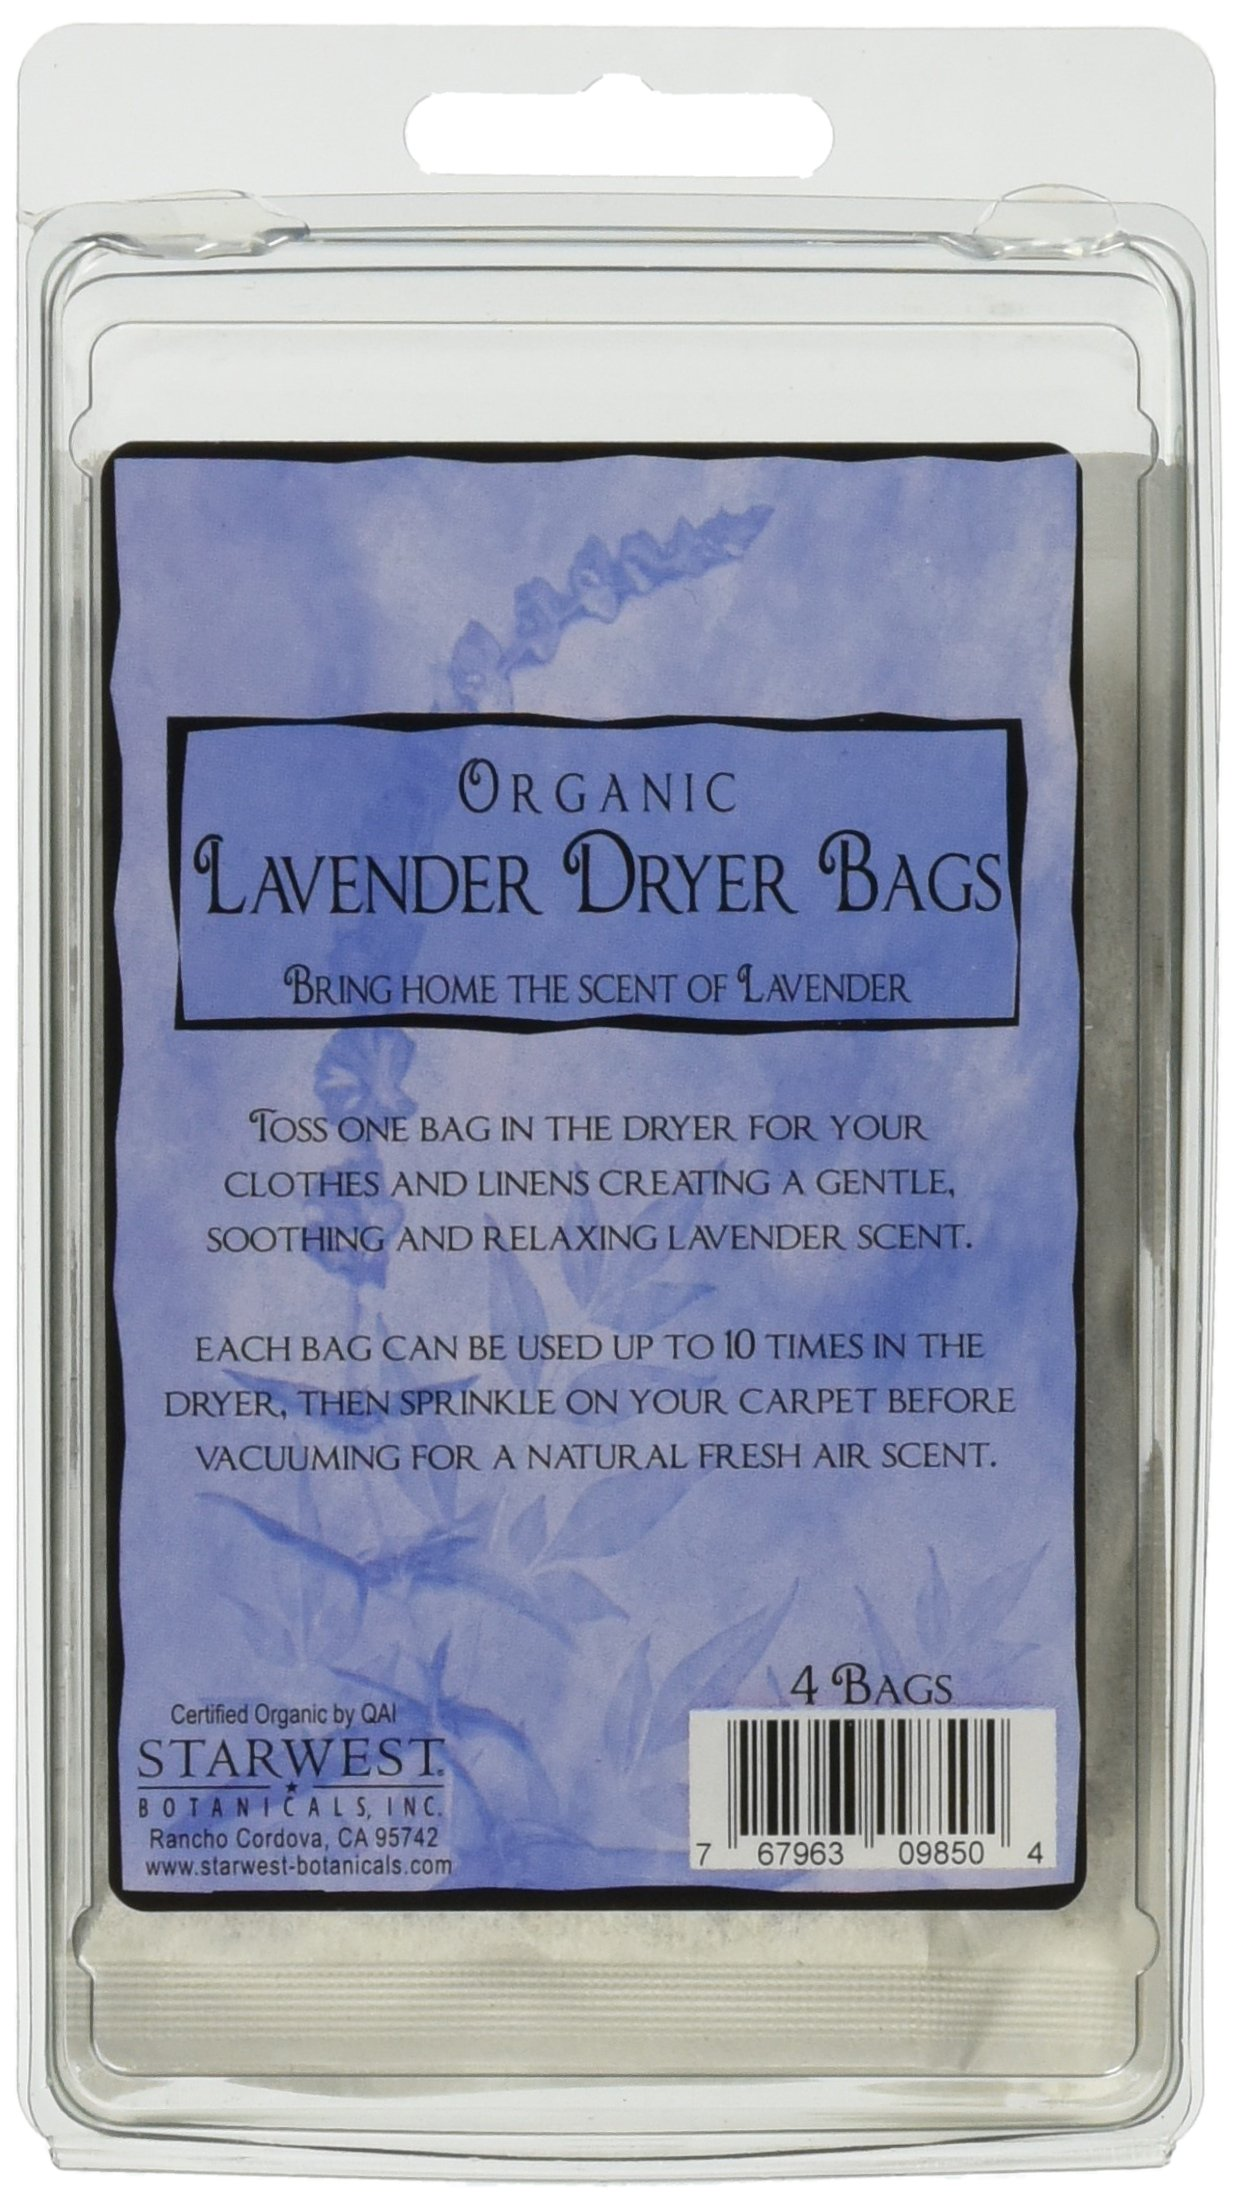 Starwest Botanicals Organic Lavender Dryer Bags, 4 Count